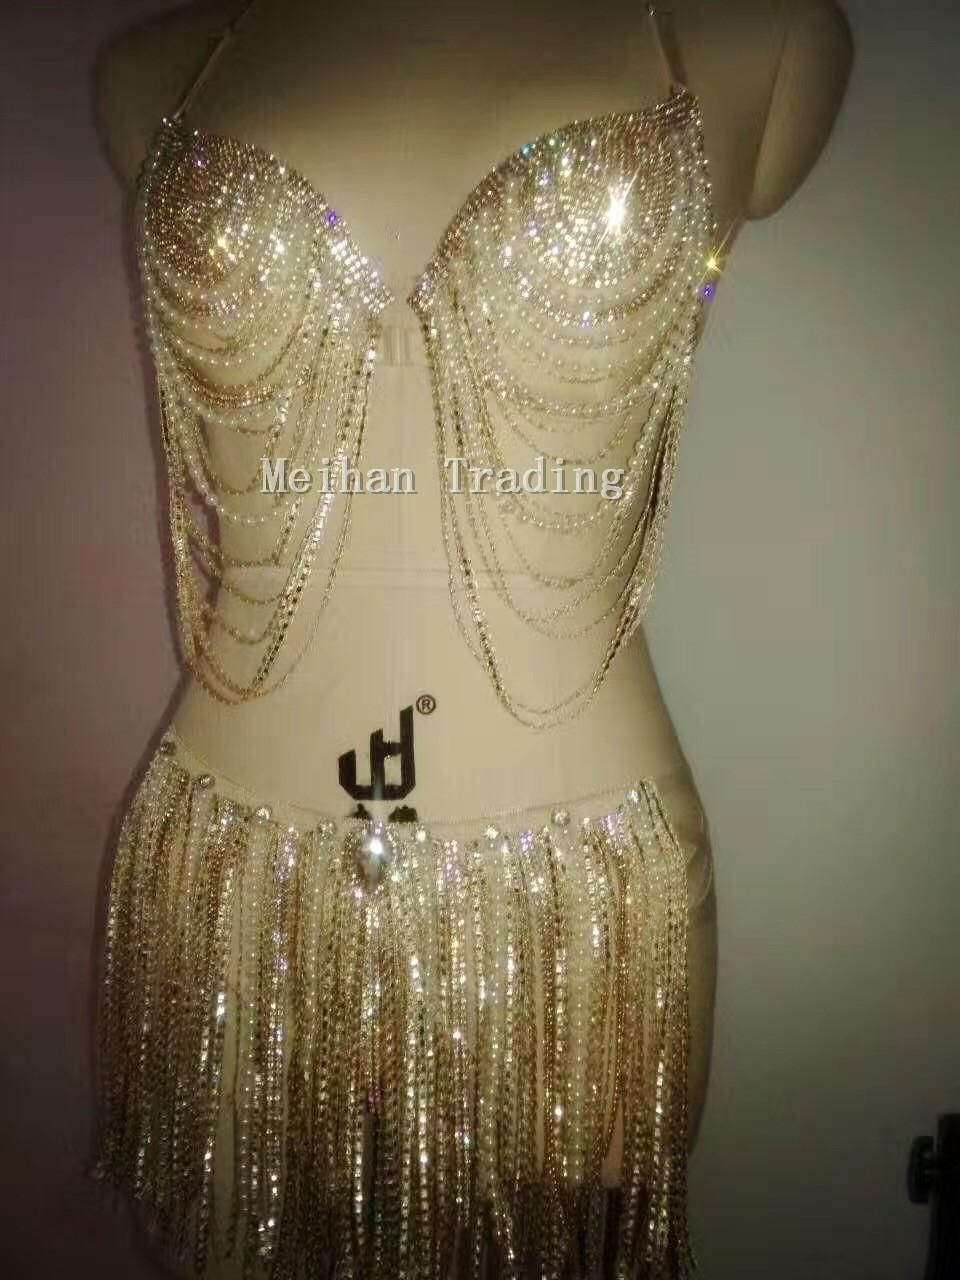 9db79194b2 Sexy Gold Crystals Tassel Bikini Clothing Set Nightclub two-piece Outfit  Party Costume Rhinestones Bra Stretch Short Swimwear. Yesterday s price  US   88.00 ...